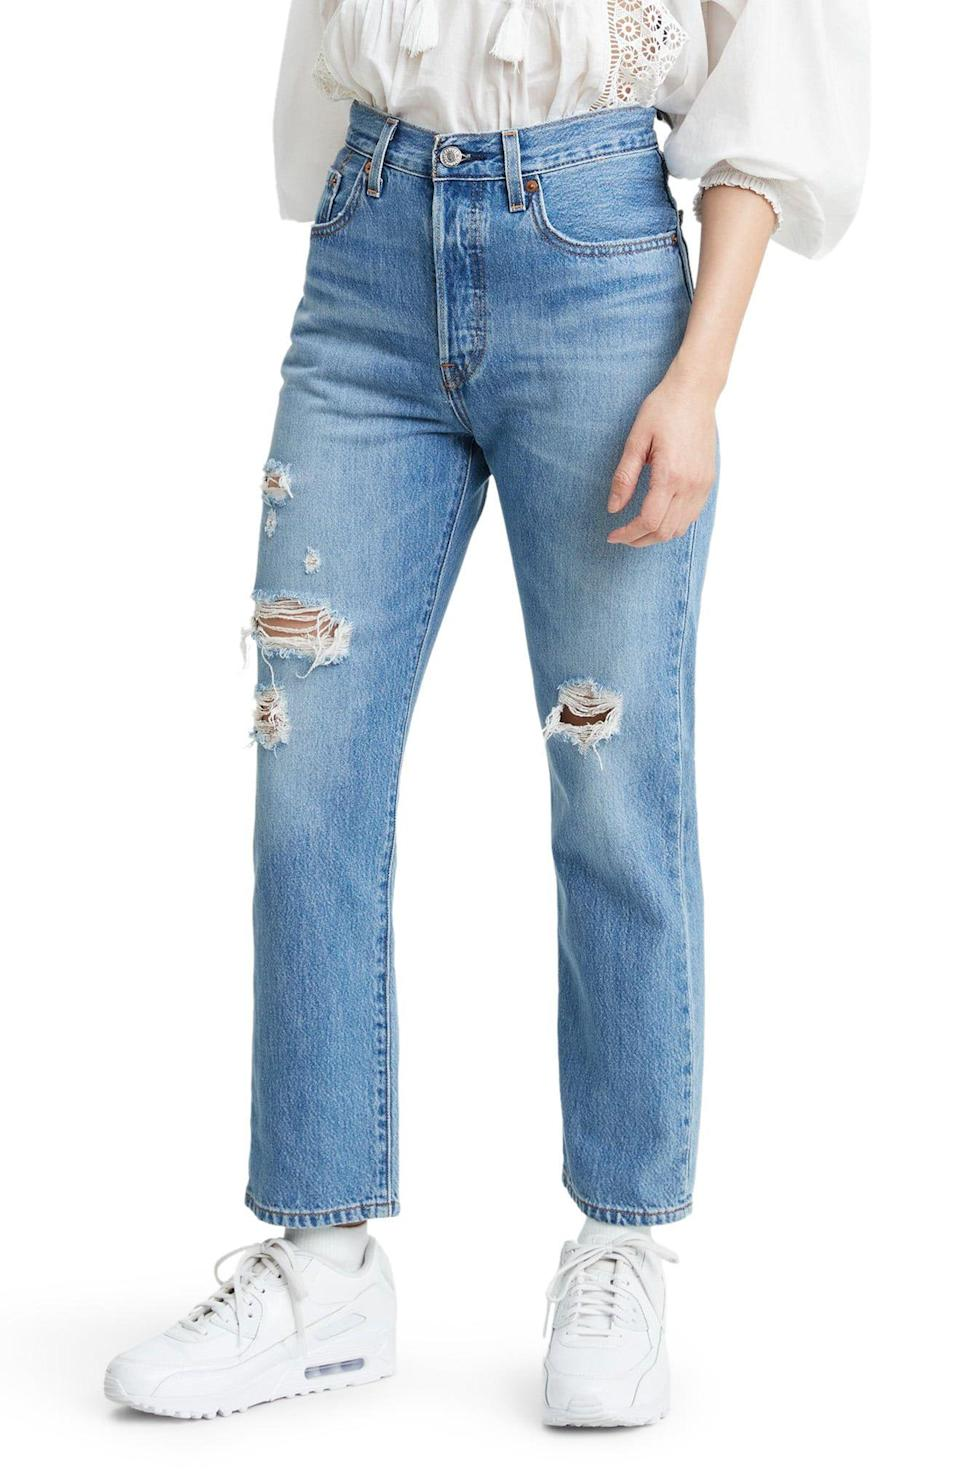 "<p><strong>Levi's</strong></p><p>nordstrom.com</p><p><a href=""https://go.redirectingat.com?id=74968X1596630&url=https%3A%2F%2Fwww.nordstrom.com%2Fs%2Flevis-501-ripped-high-waist-crop-straight-leg-jeans-sansome-light%2F5605523&sref=https%3A%2F%2Fwww.bestproducts.com%2Fpromo-coupon-codes%2Fg34775483%2Fnordstrom-black-friday-cyber-monday-deals-2020%2F"" rel=""nofollow noopener"" target=""_blank"" data-ylk=""slk:Shop Now"" class=""link rapid-noclick-resp"">Shop Now</a></p><p><strong>Price: <del>$98</del> $63.70 (35% off)</strong></p><p>A medium-wash pair of high-waisted jeans are always a good go-to—even more so when they're on sale. </p>"